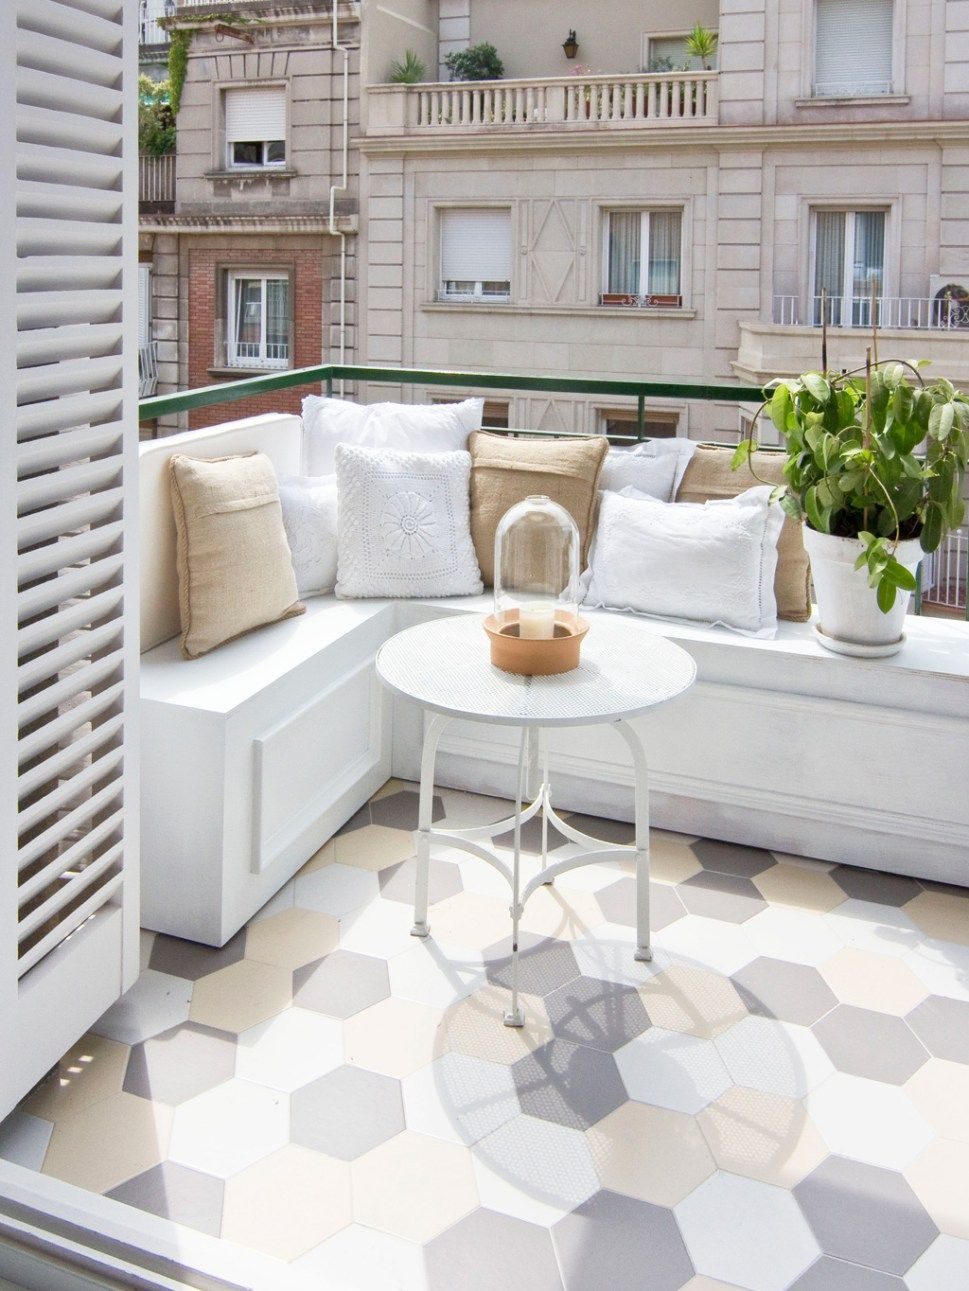 Sol Pour Balcon Revetement Sol Balcon Pas Cher Related Article With Revetement